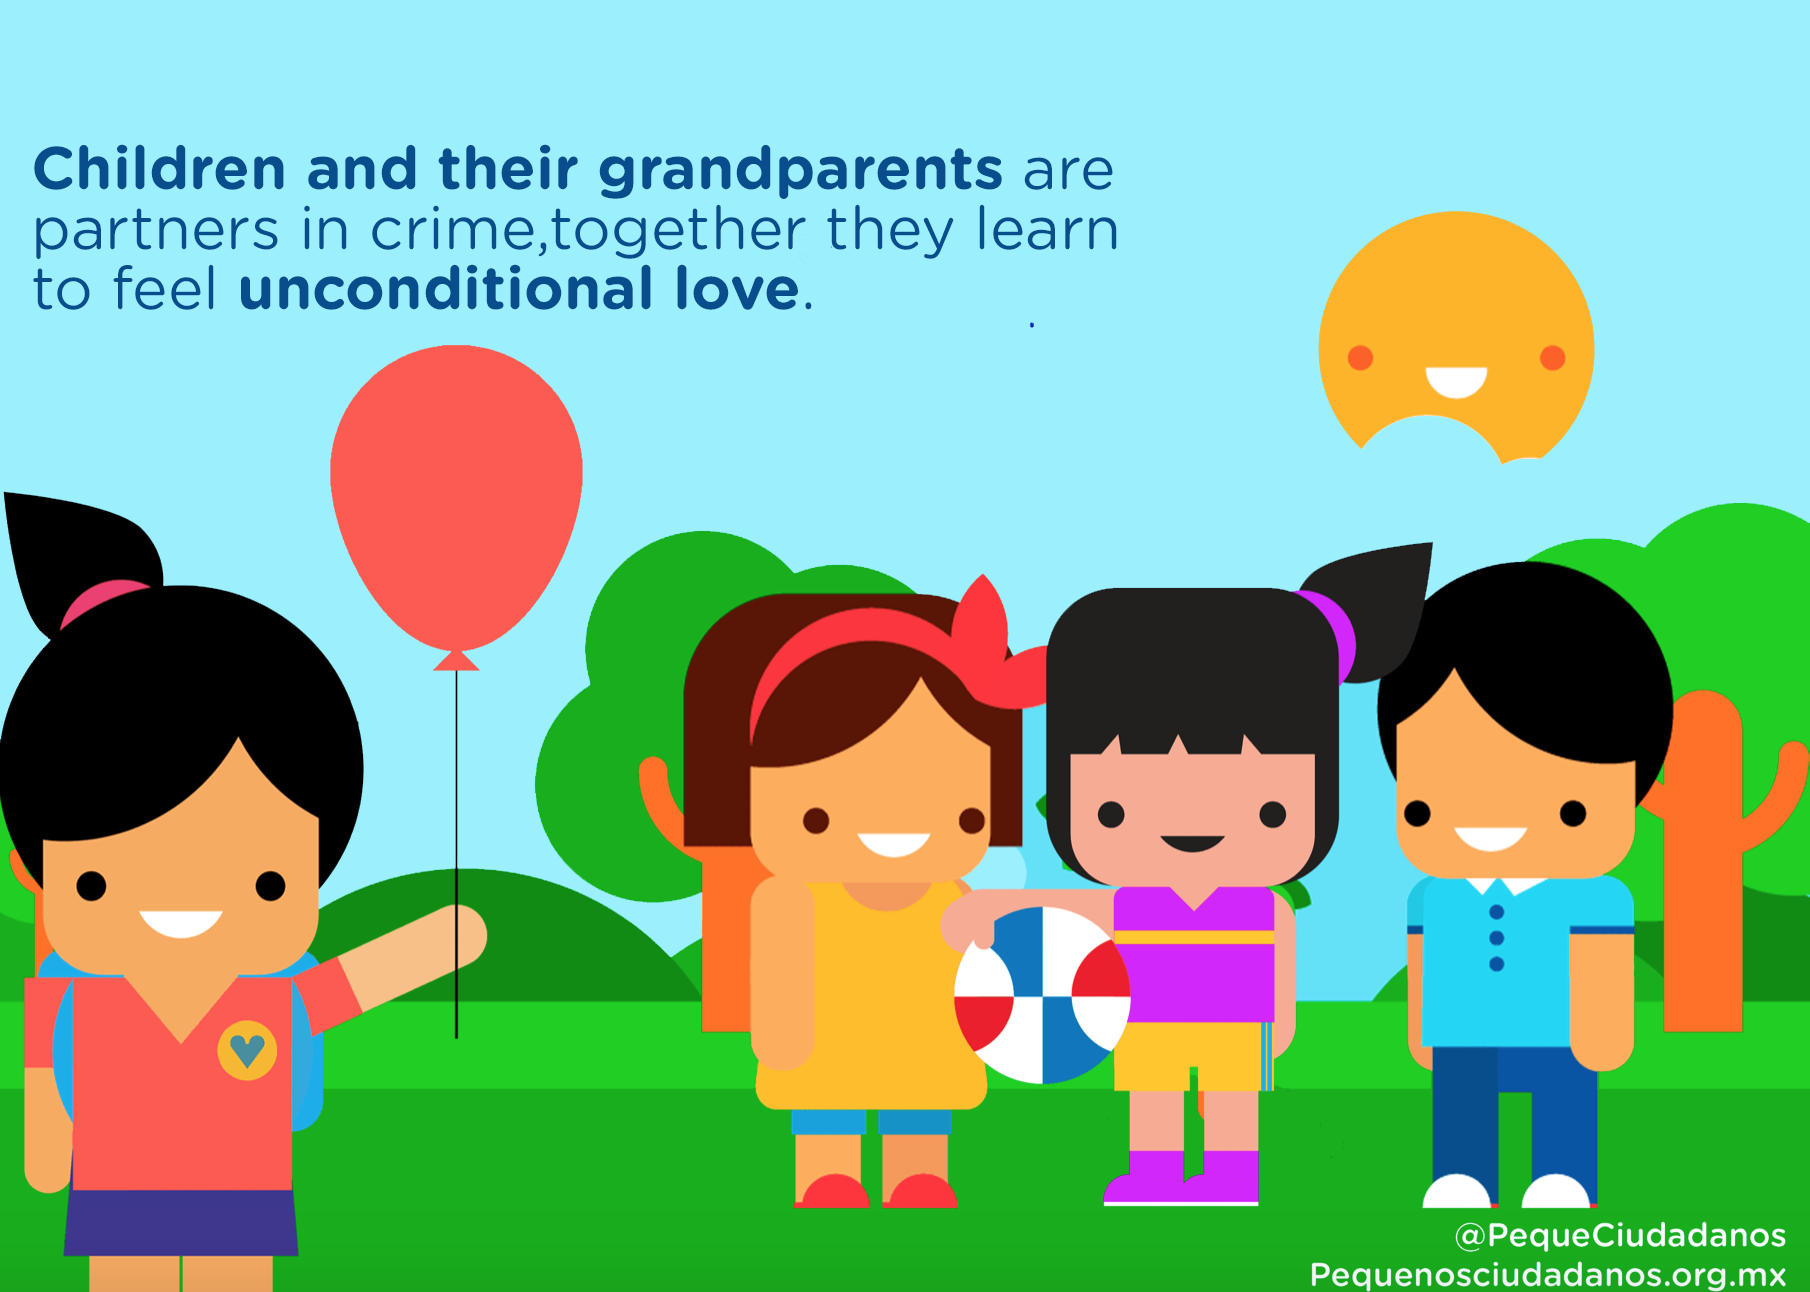 Children's right to receive their grandparent's love